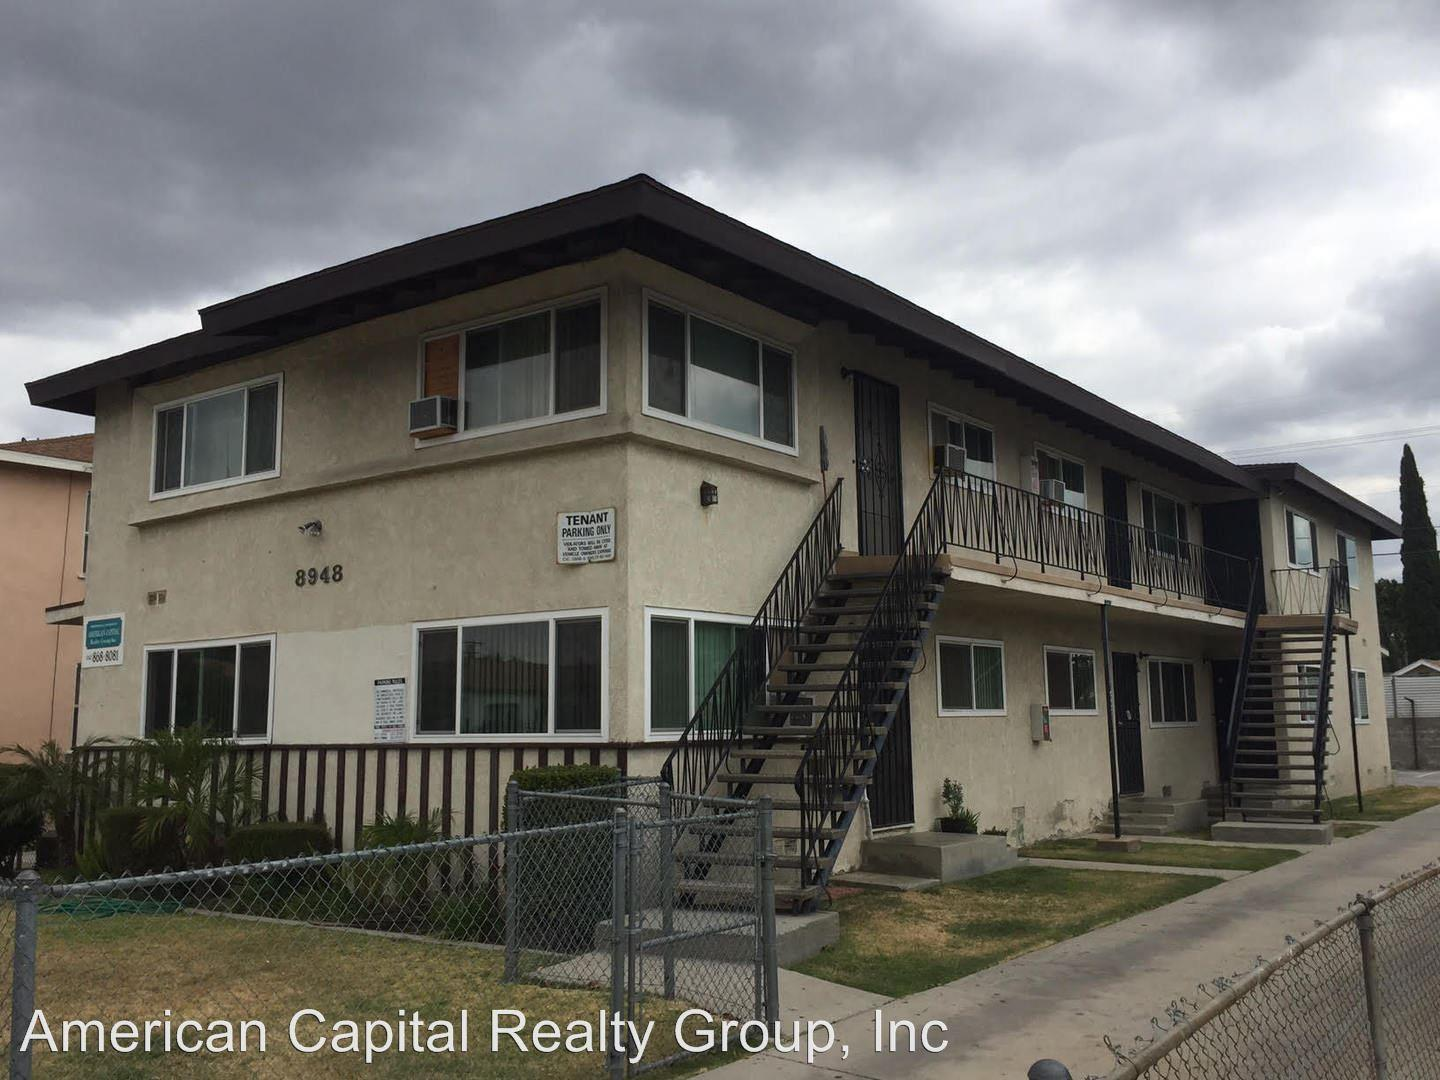 8948 McNerney Avenue - B photo #1